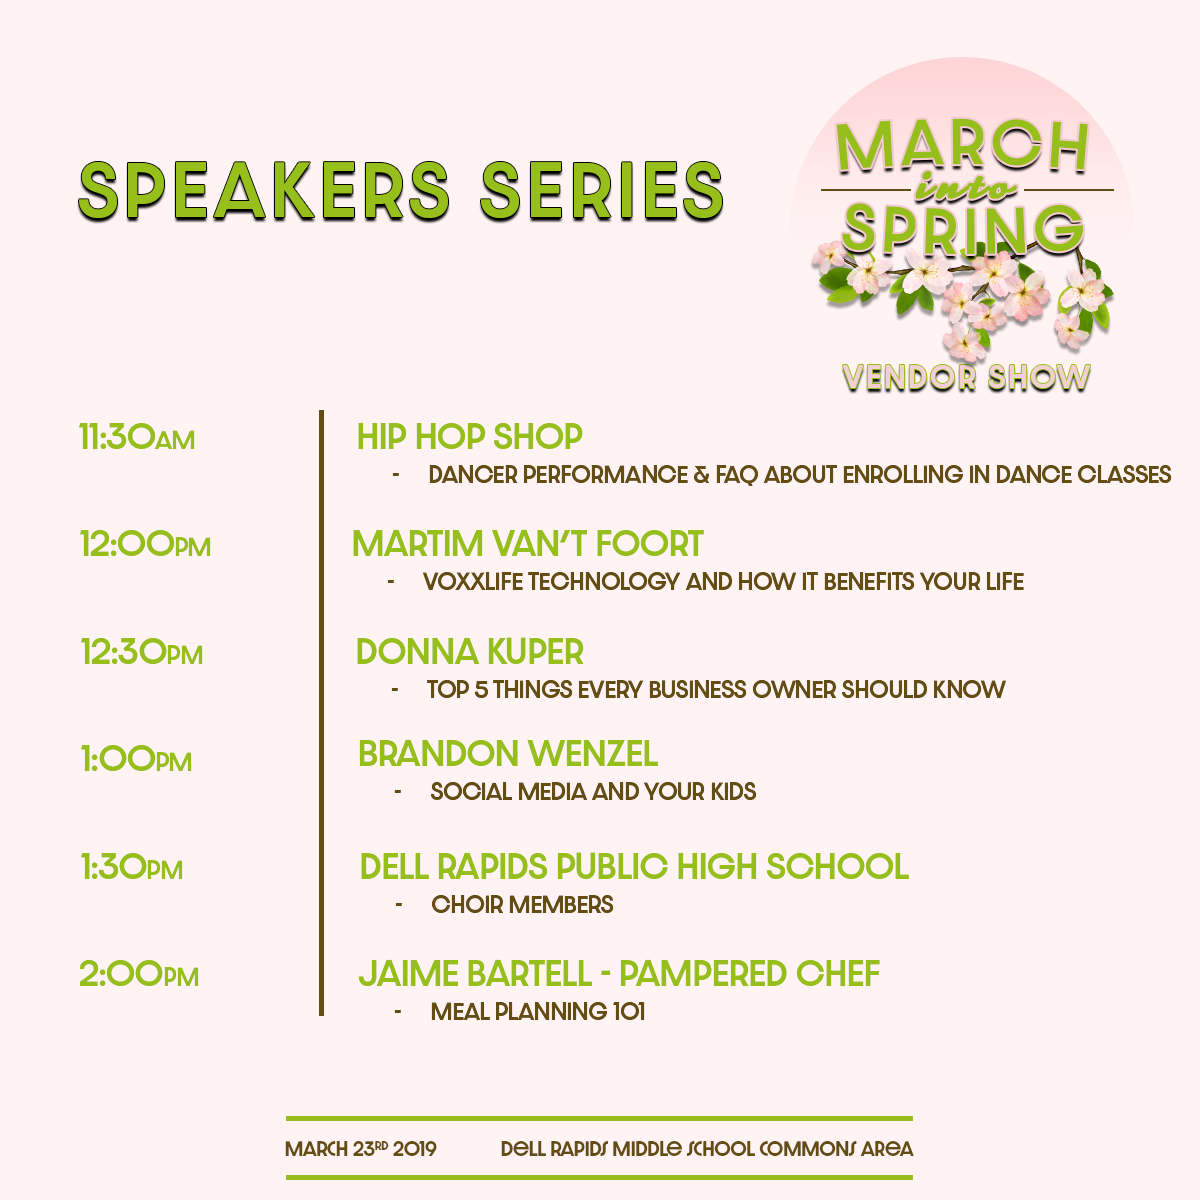 Speaker Schedule at the March Into Spring Vendor Show March 23rd 2019